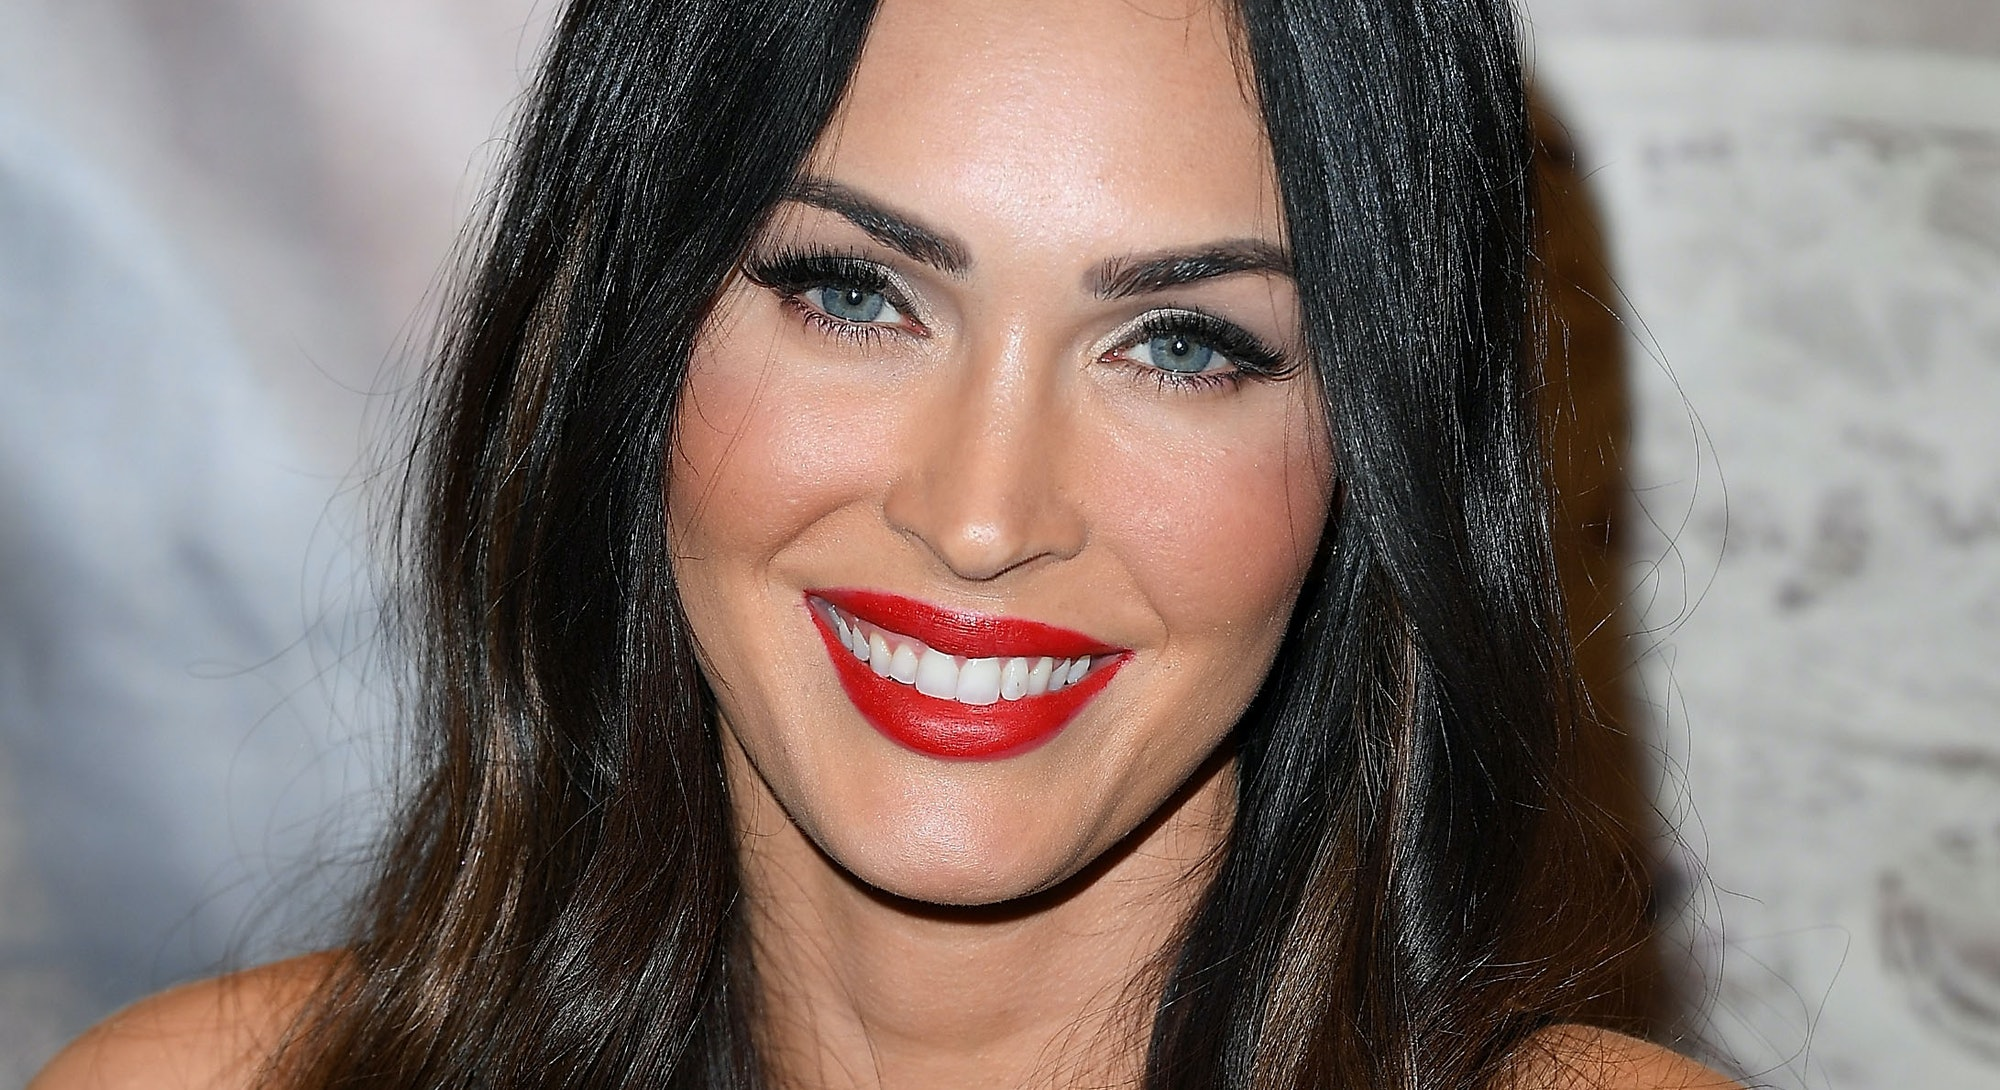 GLENDALE, CA - MARCH 23:  Actress Megan Fox Appears At Forever 21 To Promote Her New Role As Brand A...